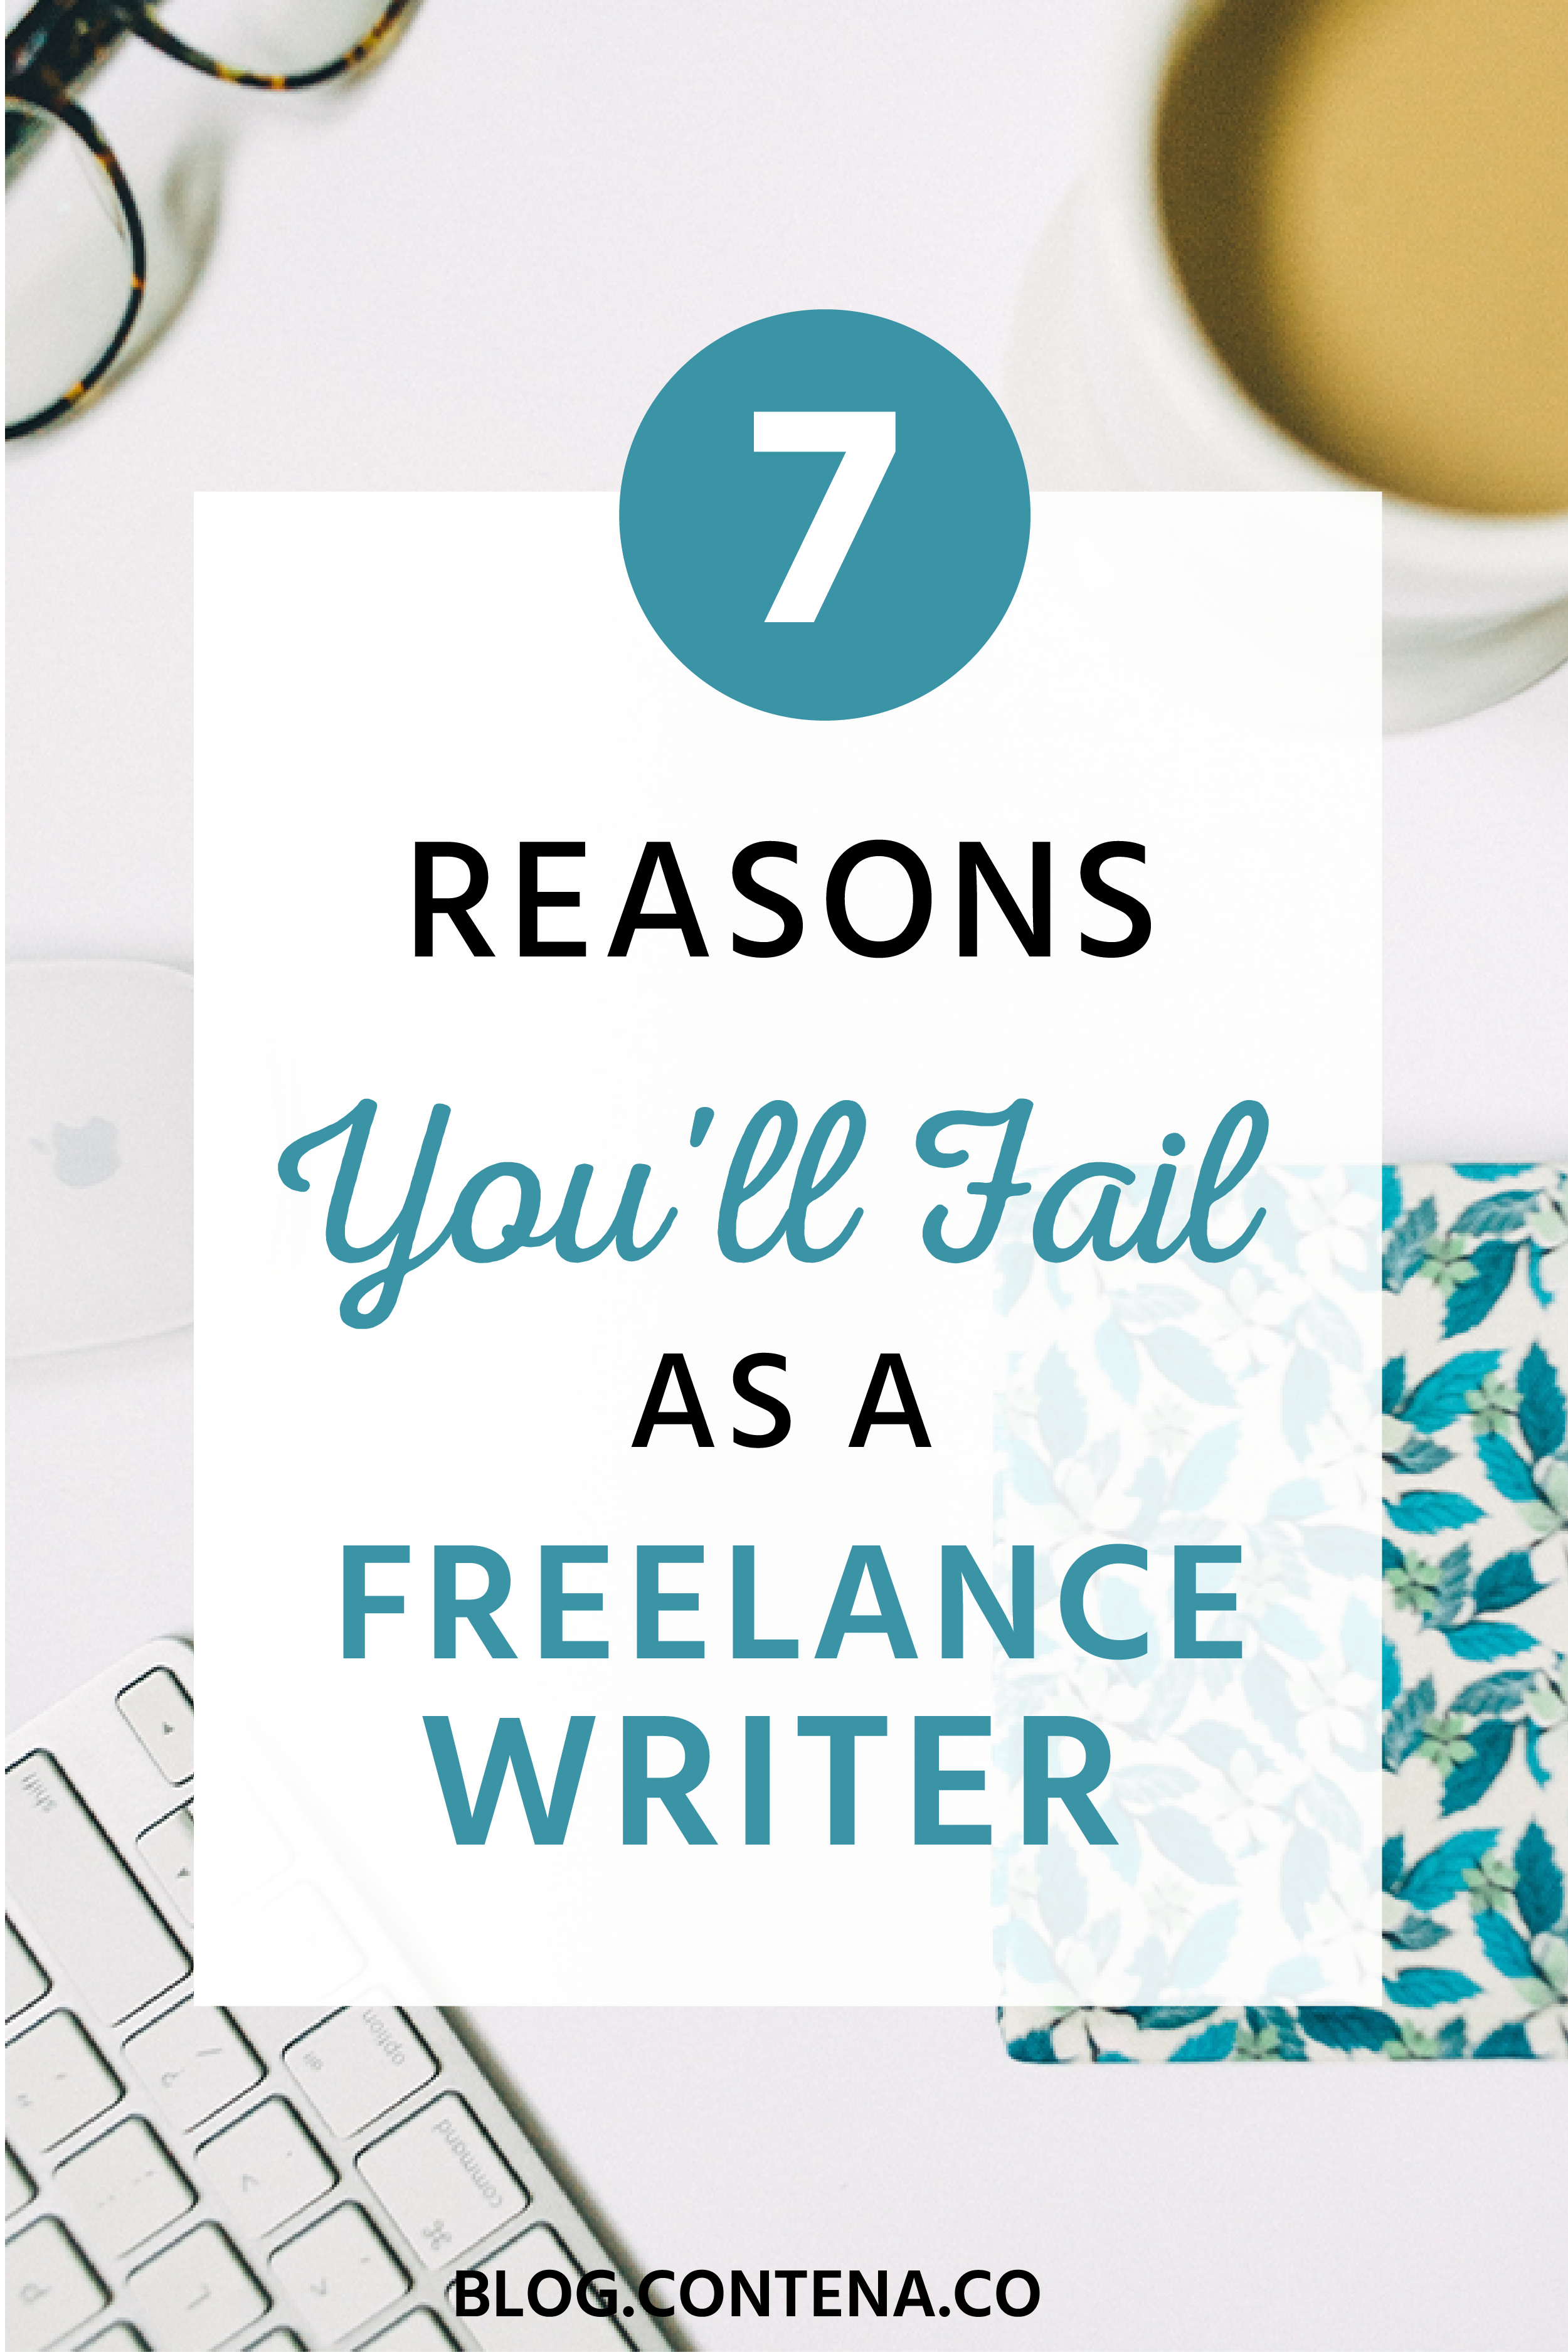 Do you want to succeed as a freelance writer? If you're a beginner freelancer you want to make sure you don't fail. Learn about organization, best business practices, and legit tips for how to be successful in the business of freelance writing. #FreelanceWriting #Freelancer #WorkFromHome #SideHustle #Money #OnlineBusiness #Writing #WritingJobs #Money